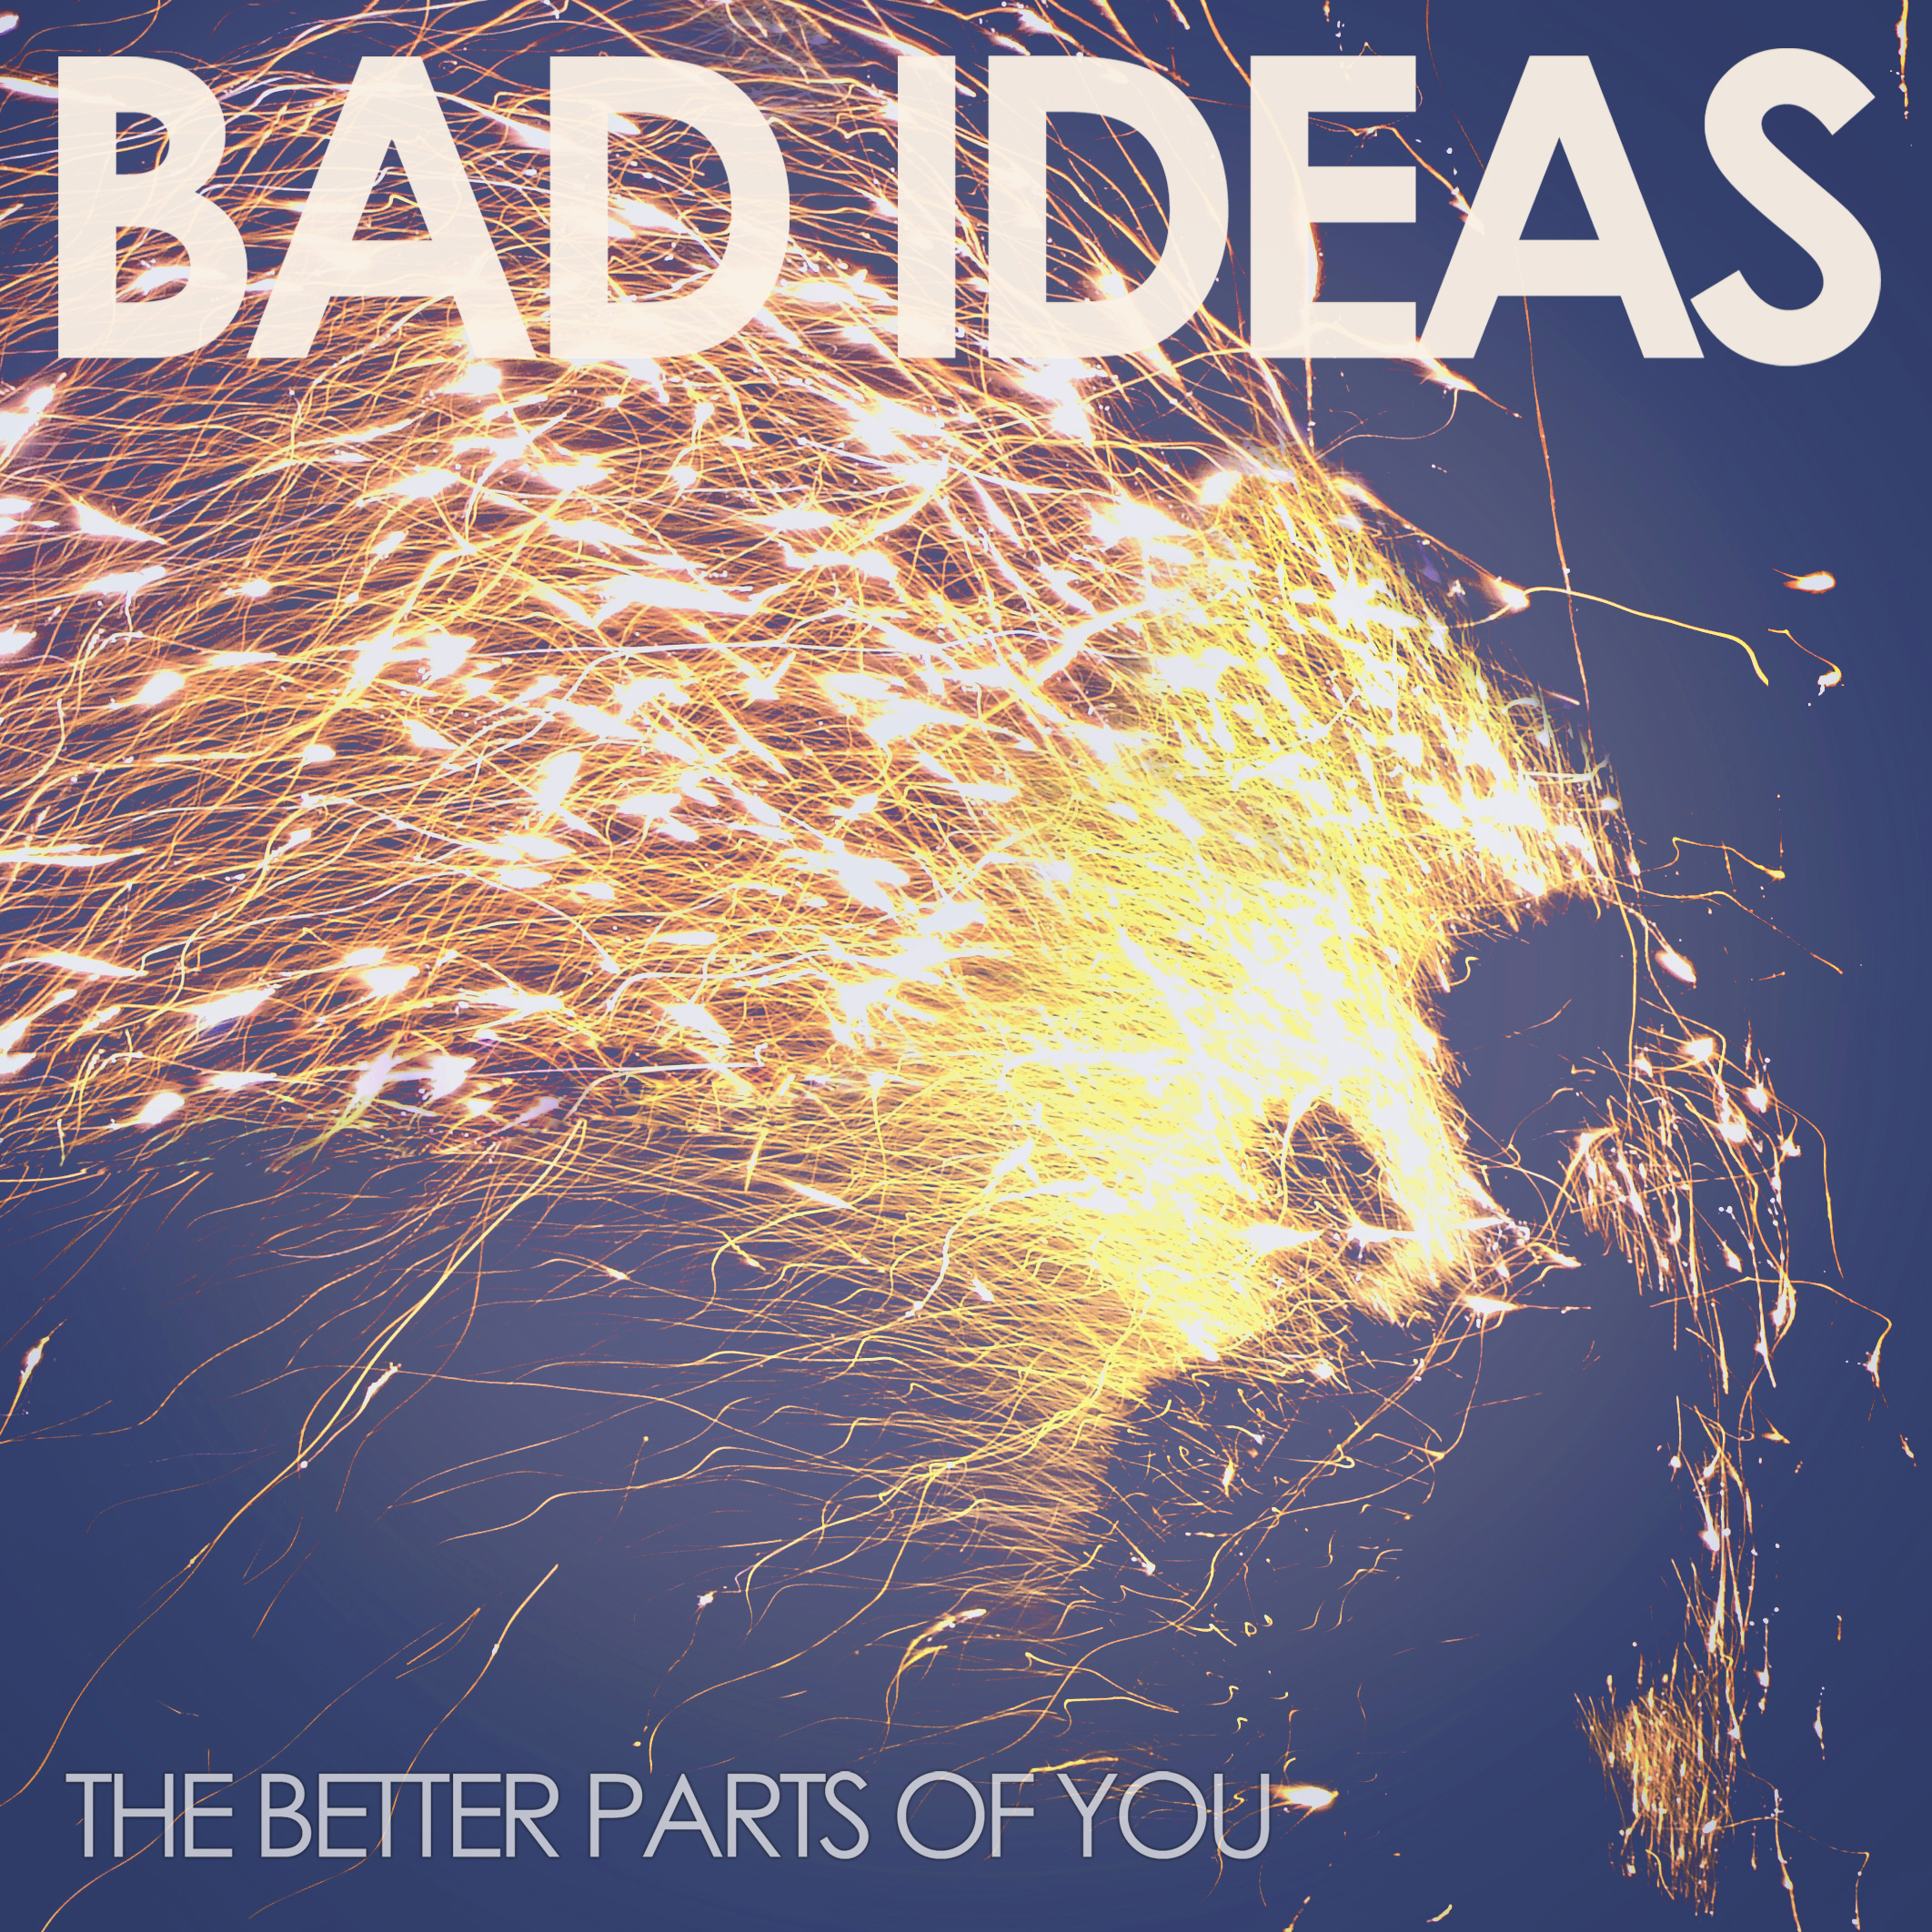 Bad-Ideas-The-Better-Parts-Of-You-Cover